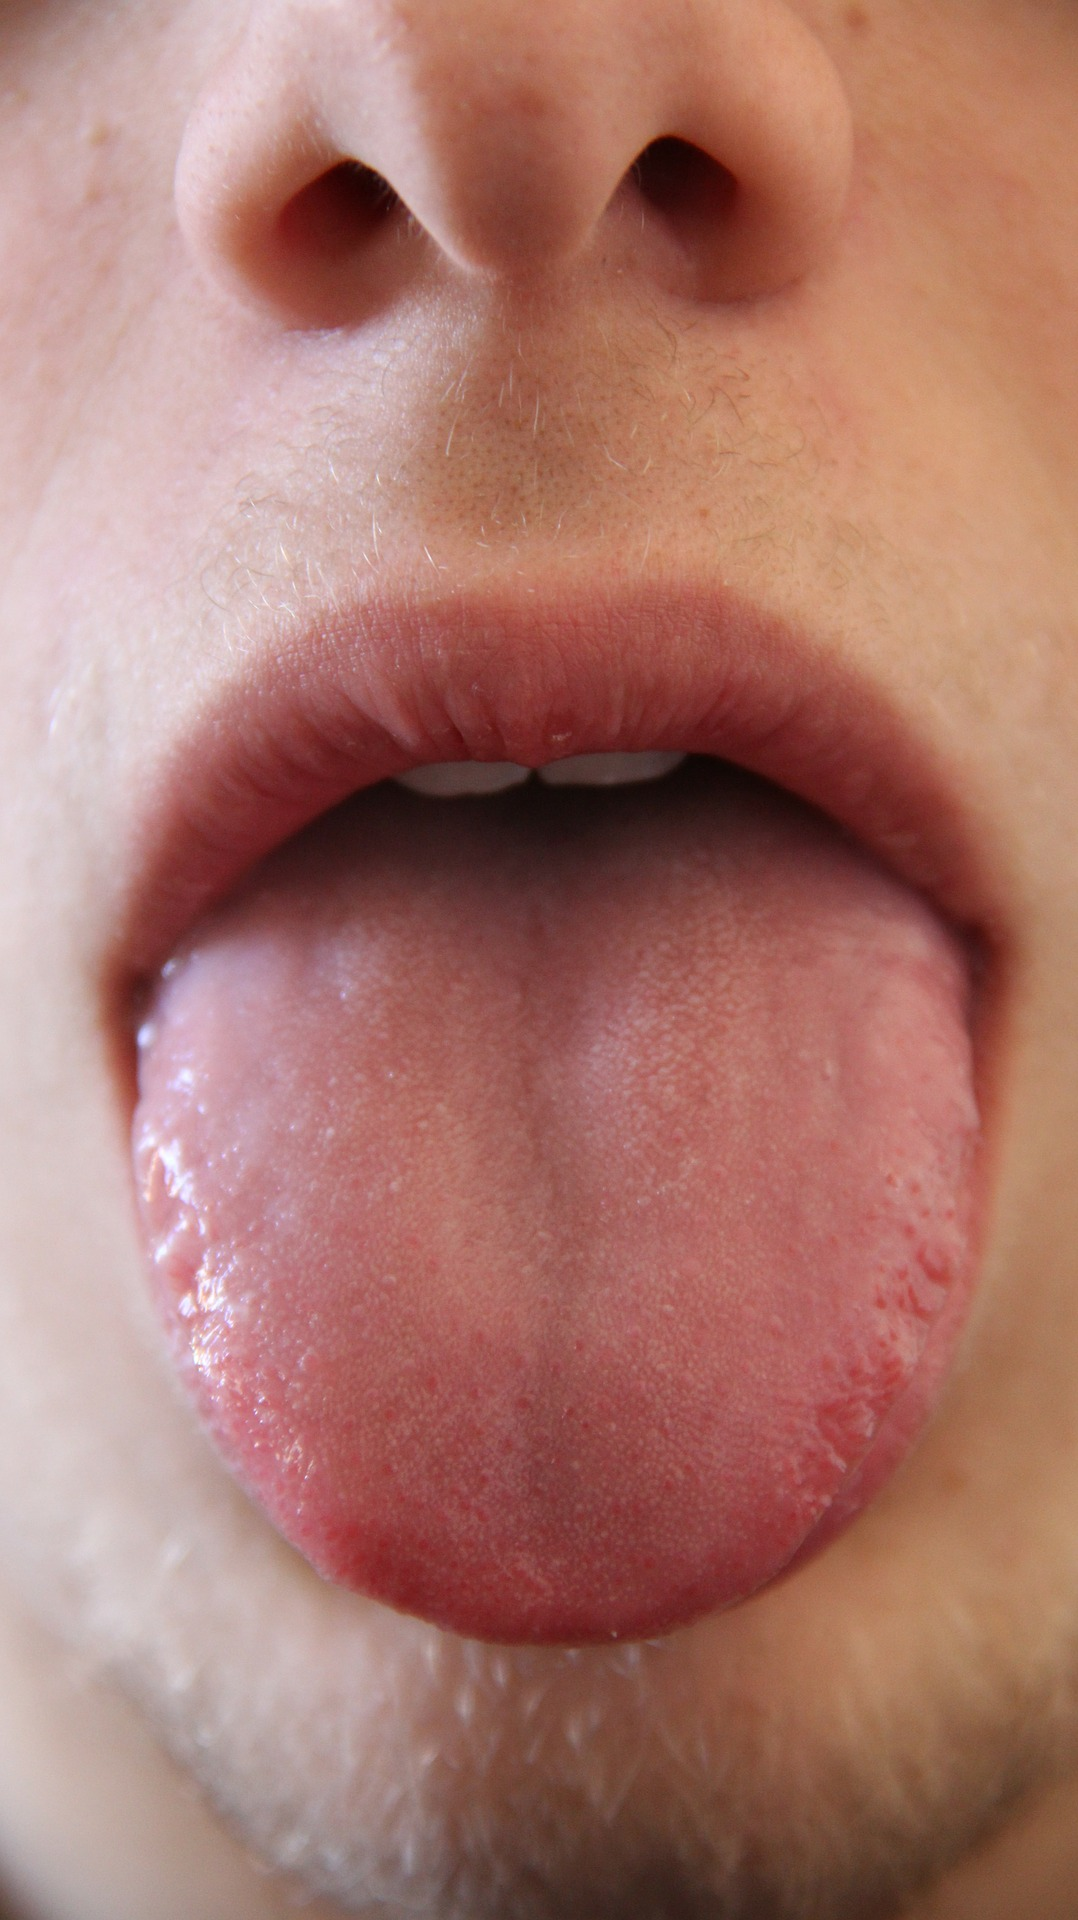 Tongue Problems? Here's What's Wrong.